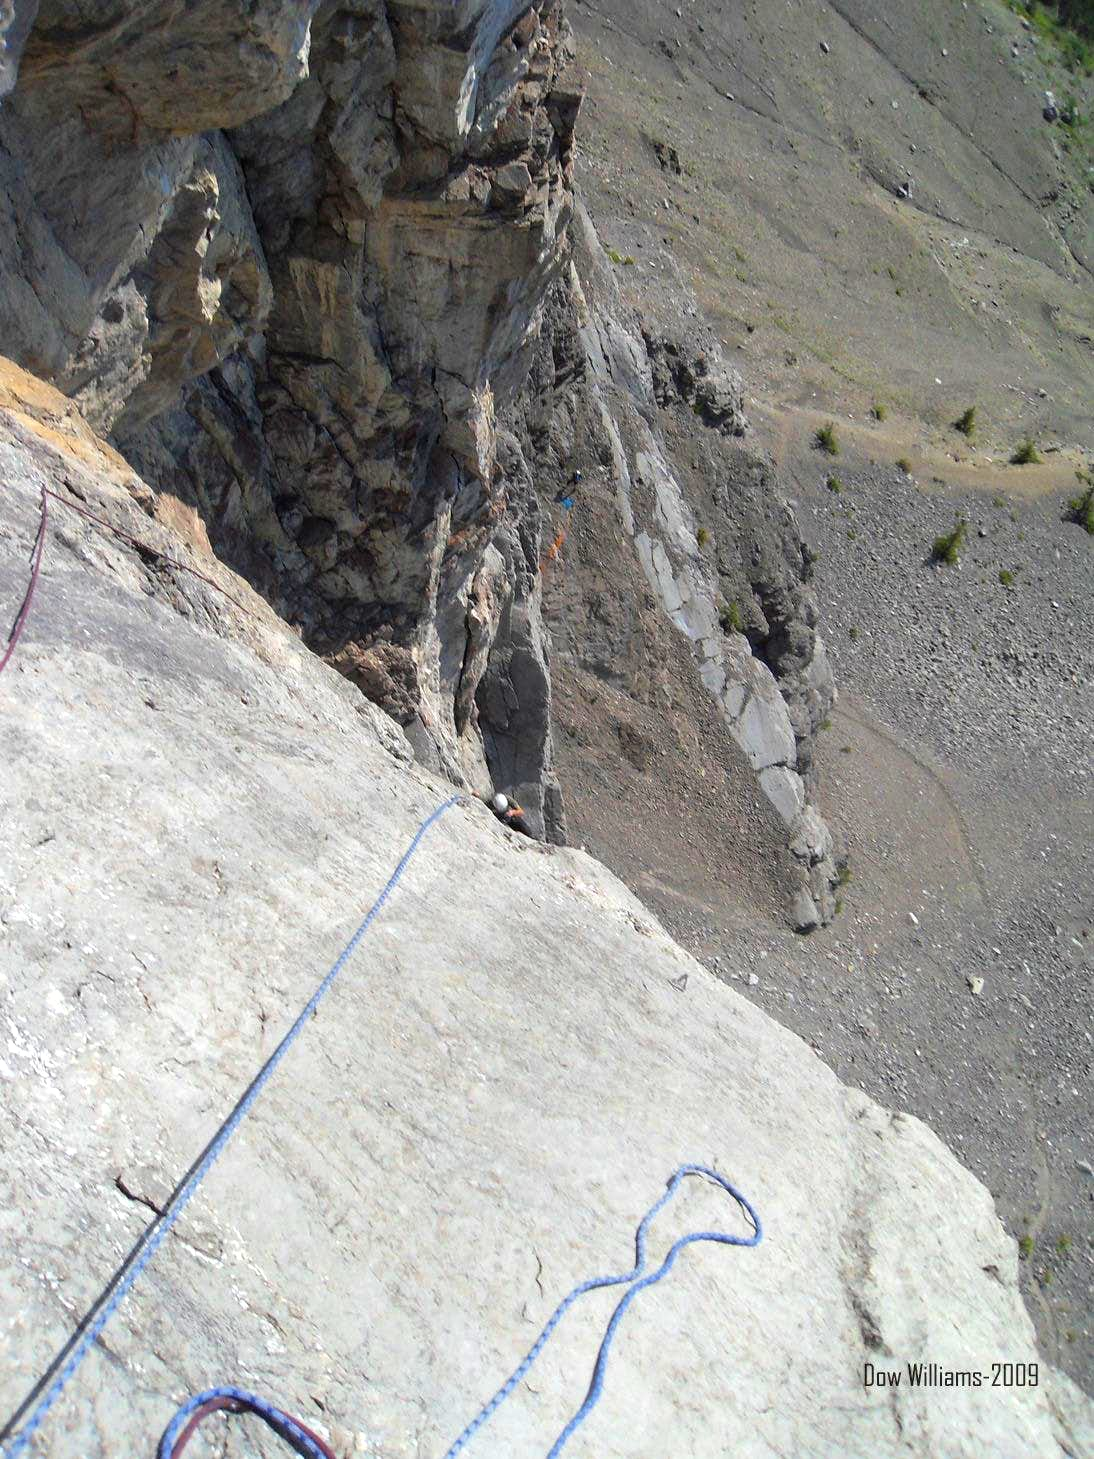 Suicide Wall, 5.10c-5.11d